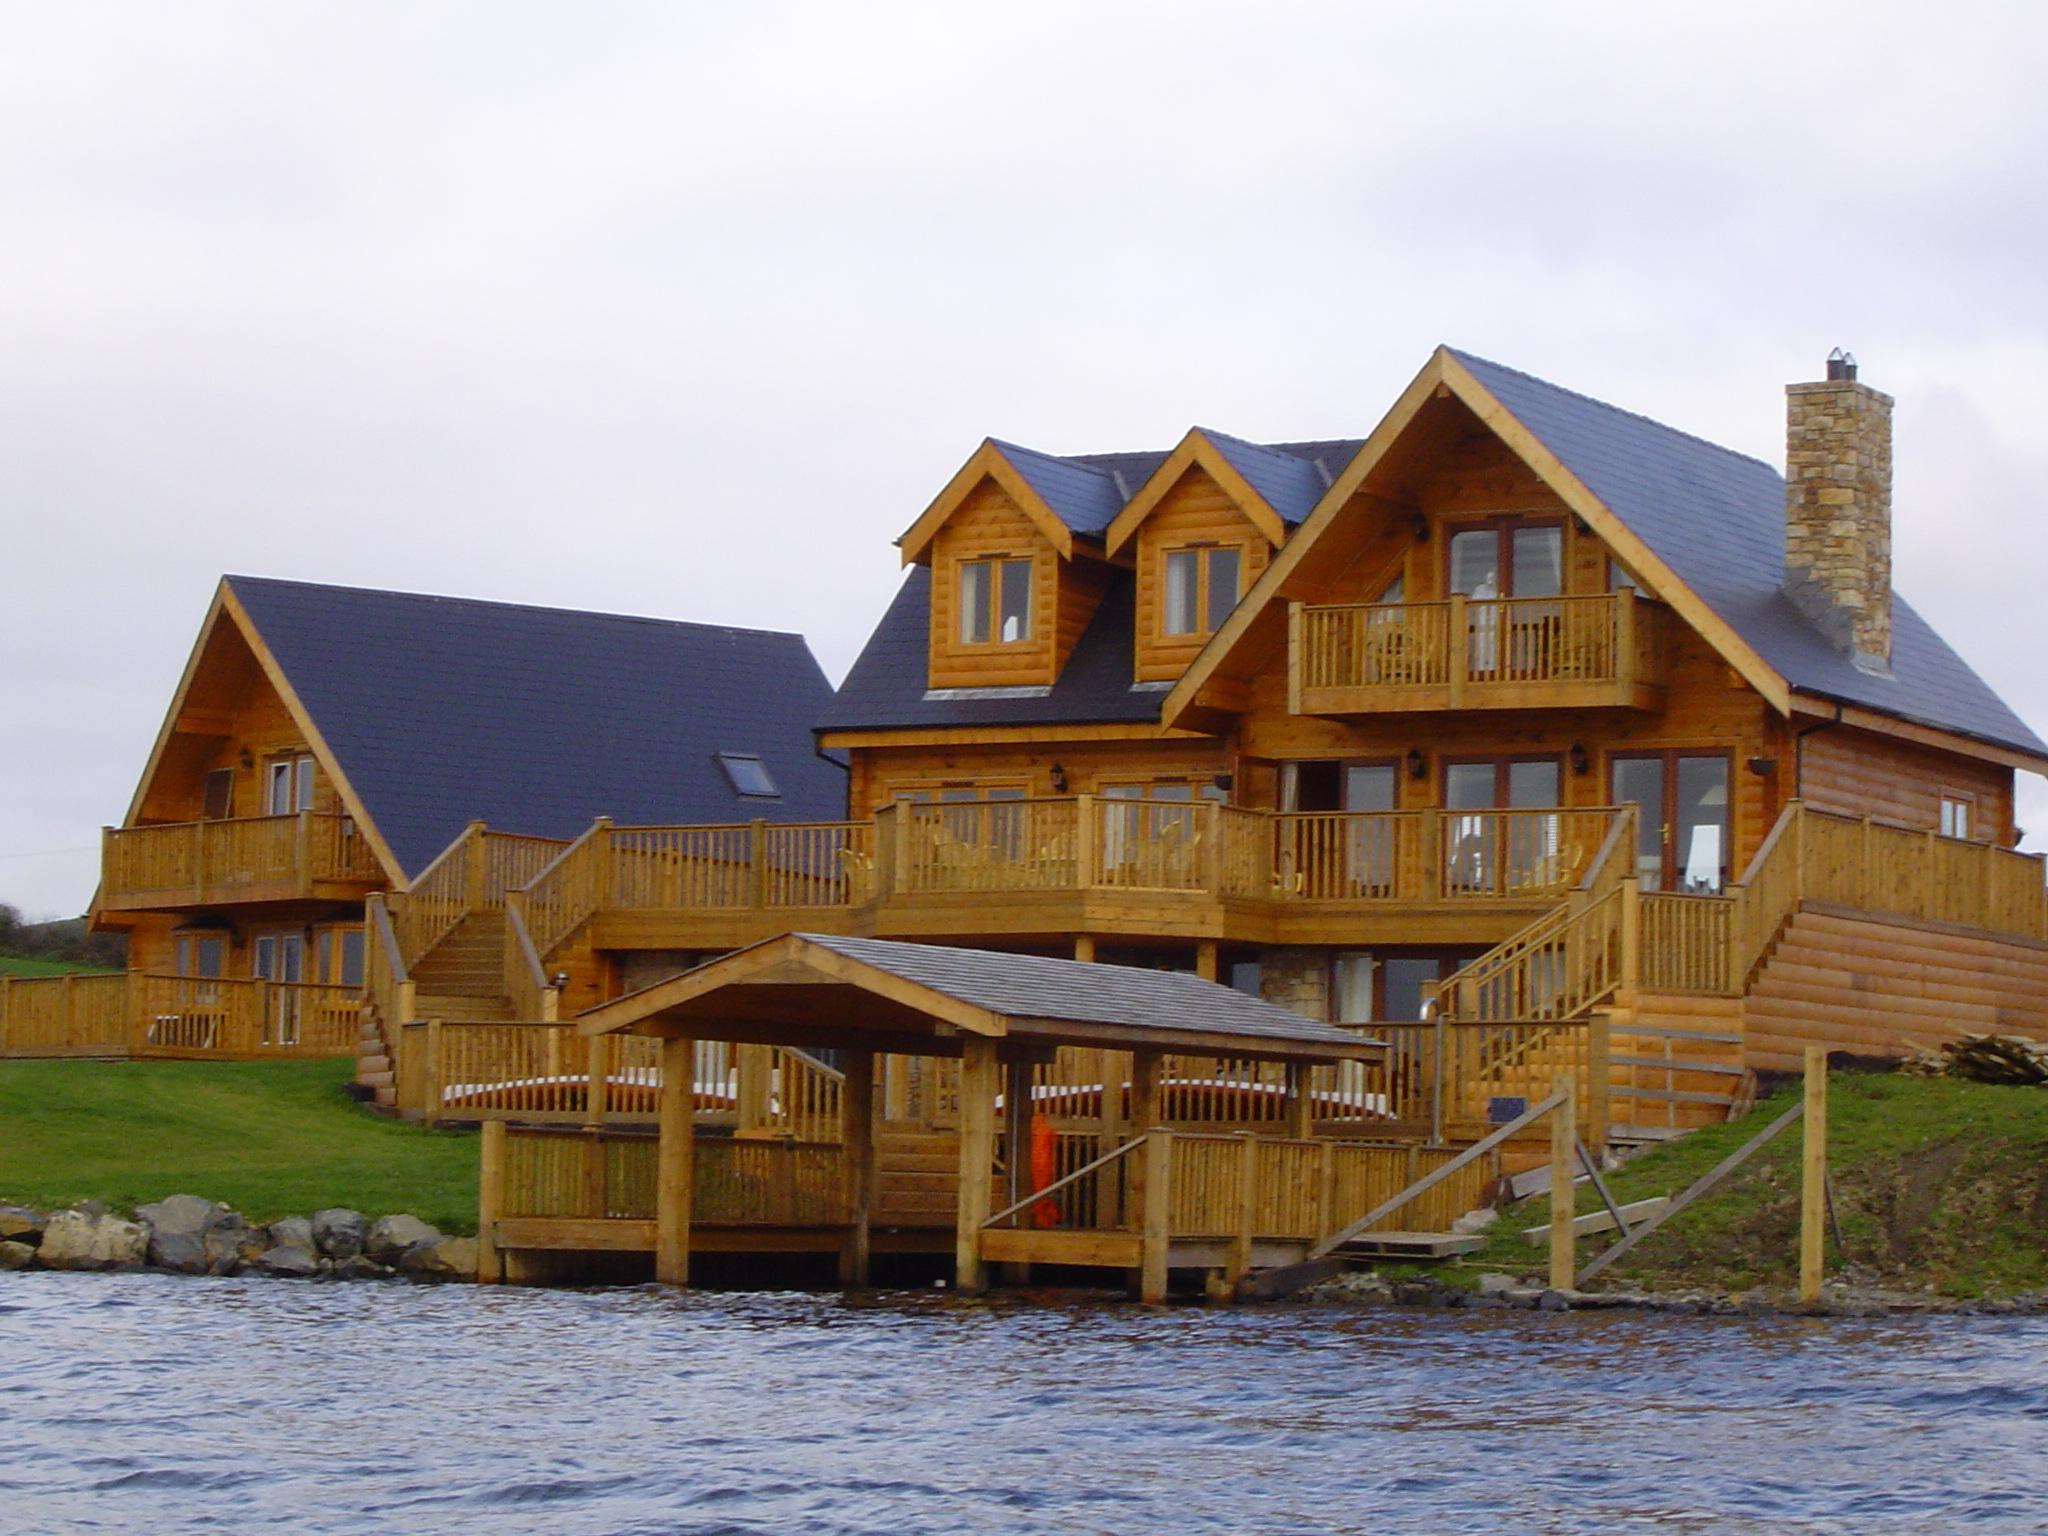 Marvelous photograph of Log Home Mansions http://www.fordaq.com/fordaq/srvAuctionView.html  with #6D441A color and 2048x1536 pixels